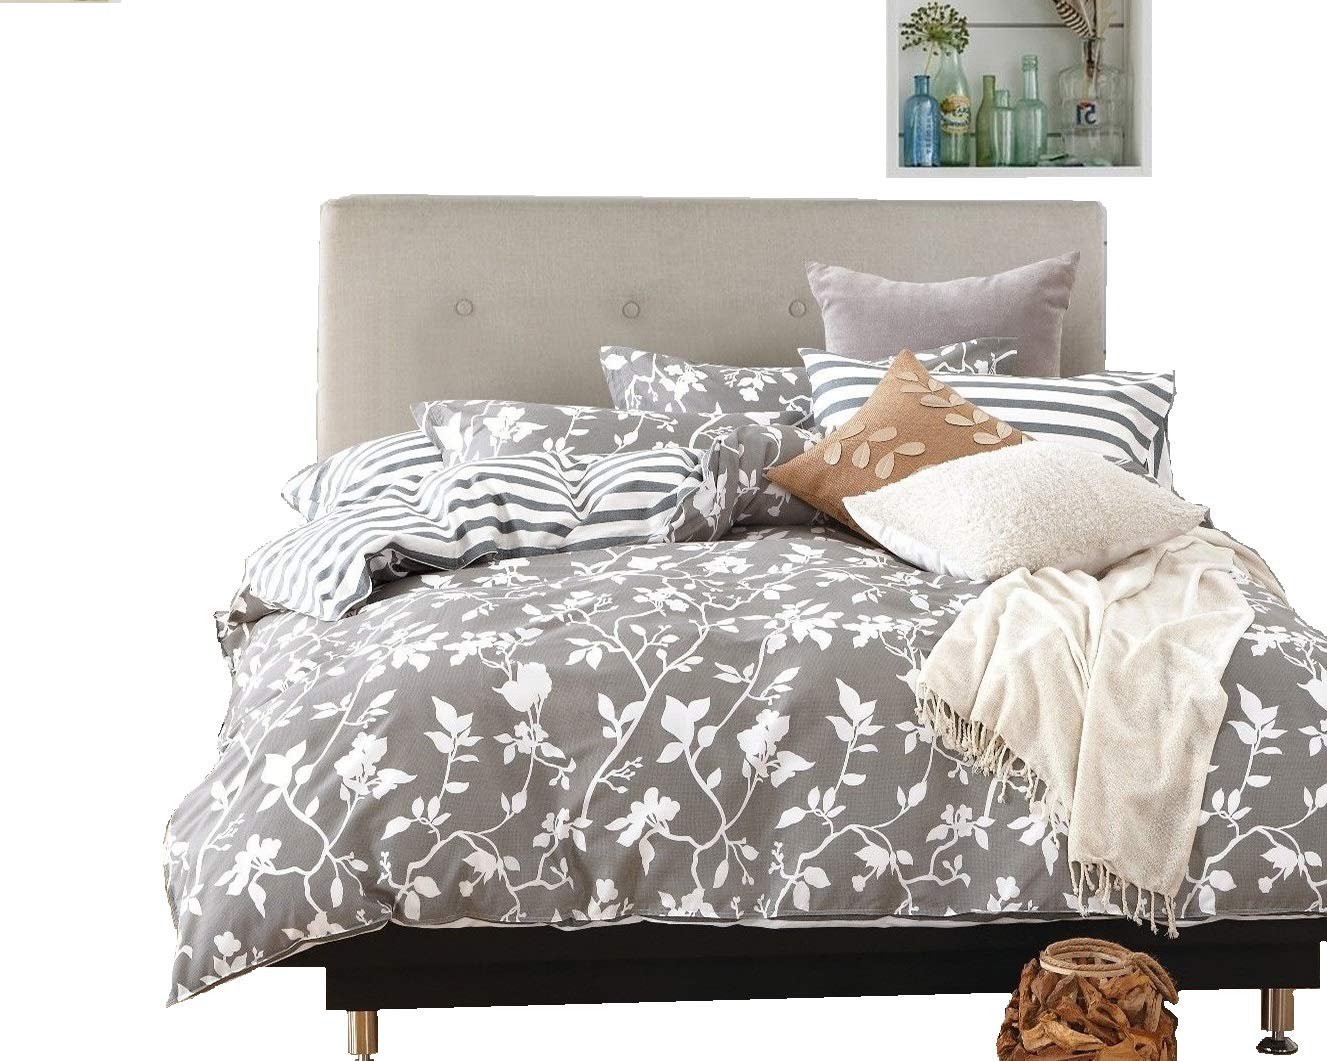 Swanson Beddings Leafy Vines 3-Piece 100% Cotton Bedding Set: Duvet Cover and Two Pillow Shams (King)